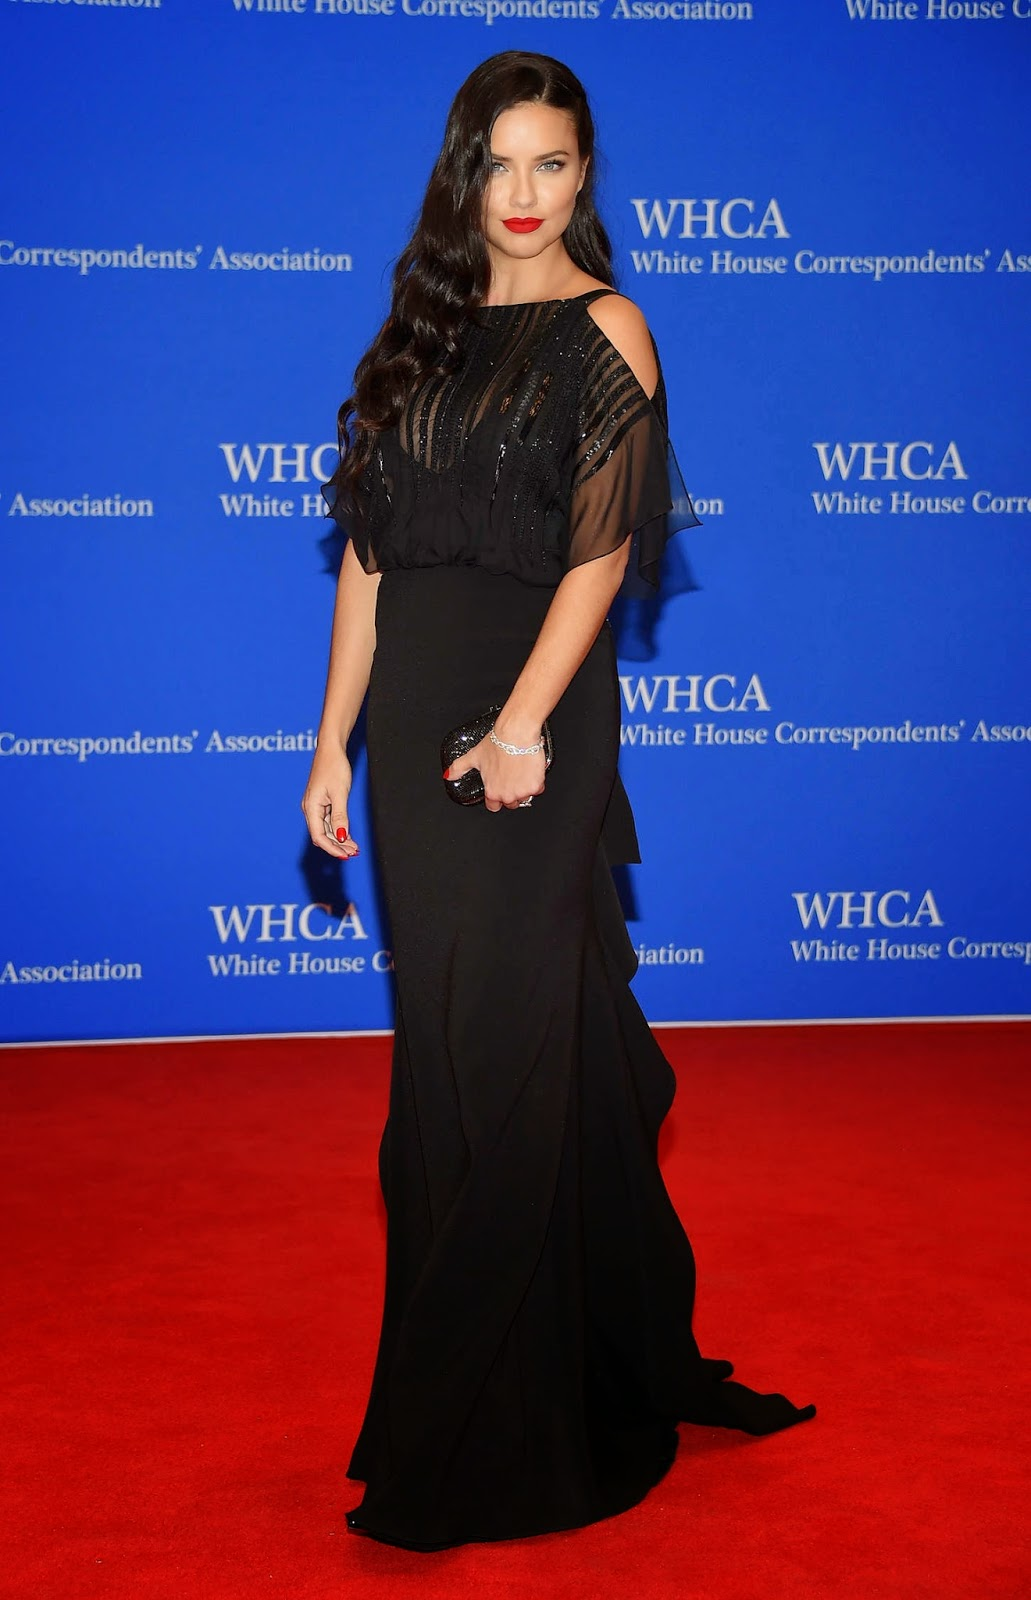 Adriana Lima sizzles in black at the 2015 White House Correspondents' Association Dinner